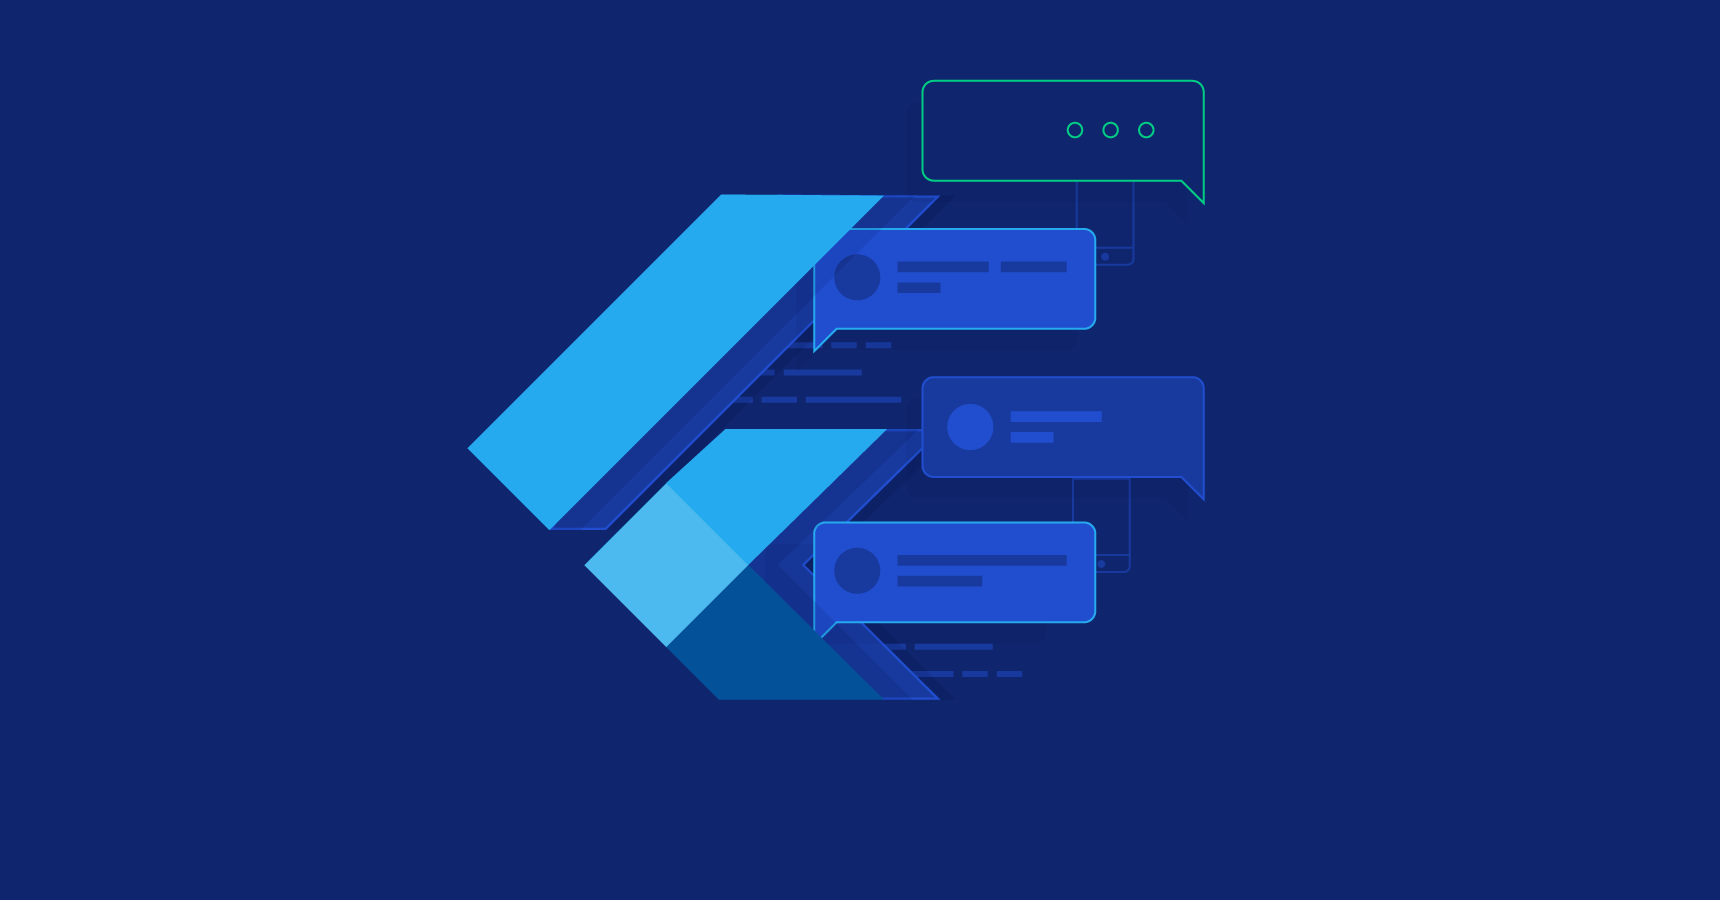 Flutter Tutorial: How to Build a Messaging App | Toptal